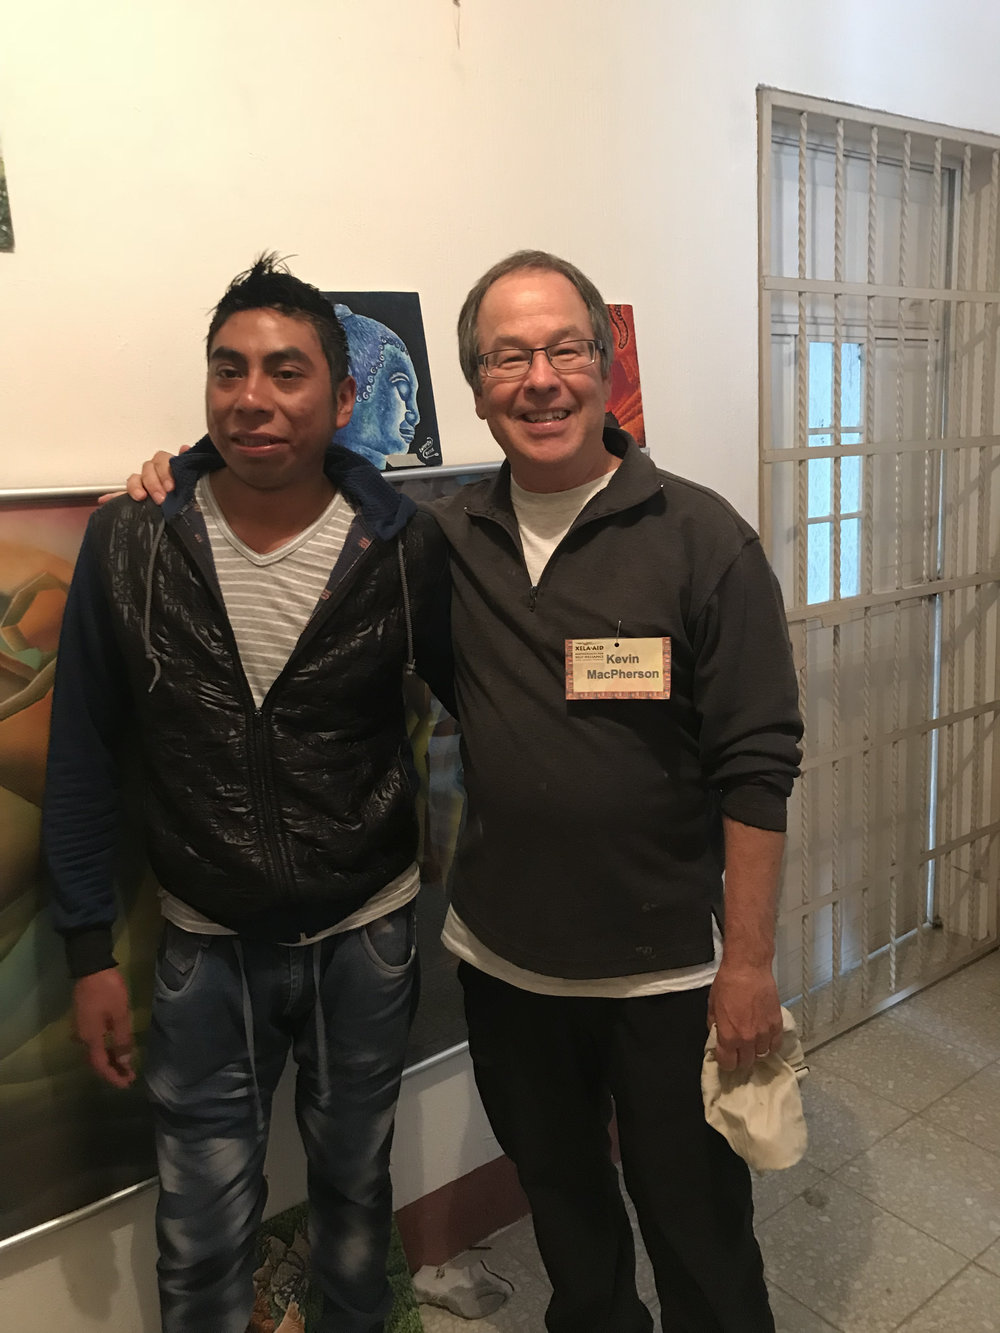 Kevin with art scholarship recipient, Lorenzo.